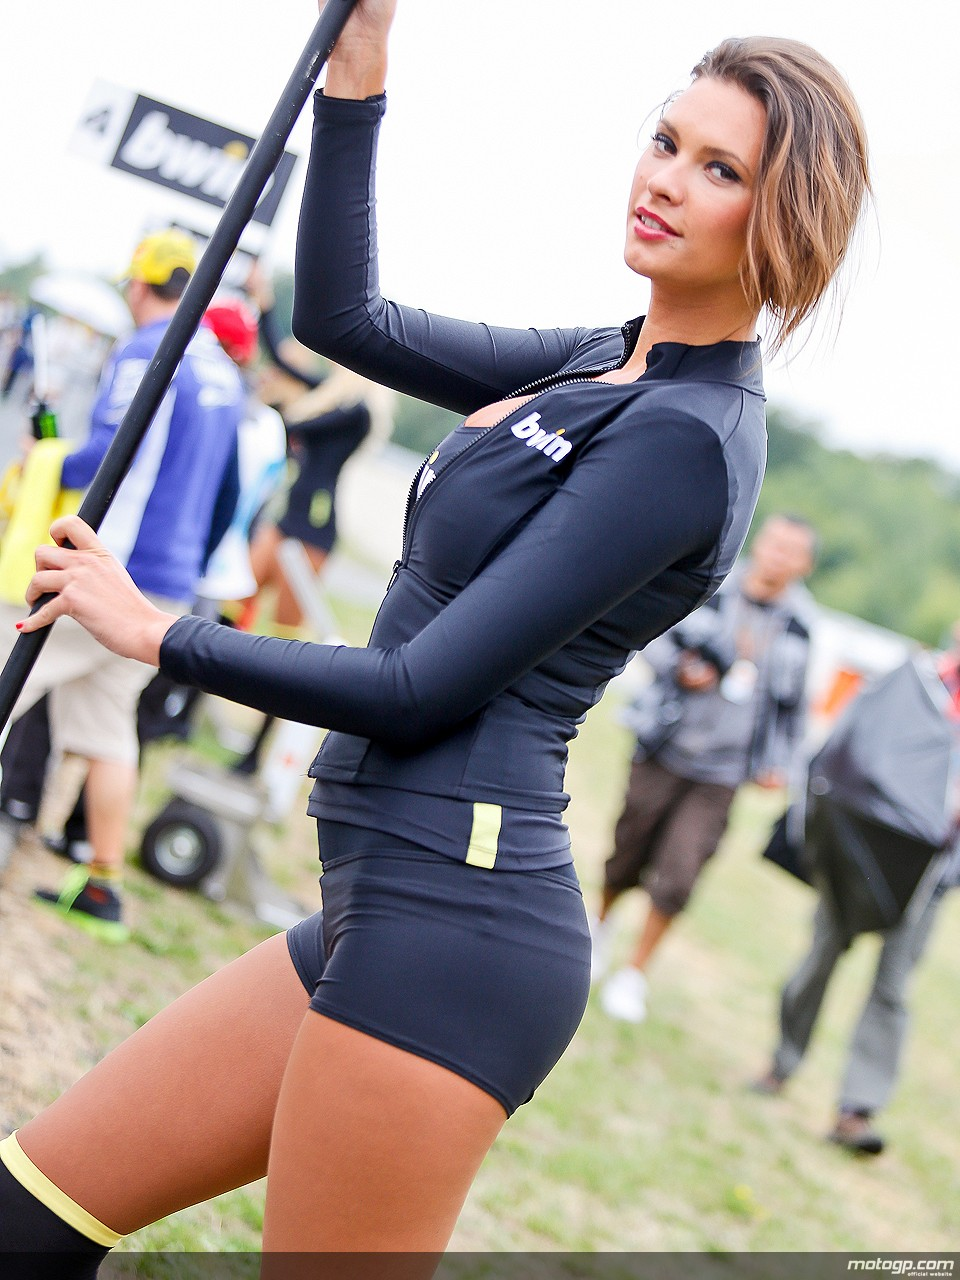 2013-motogp-paddock-girls-at-brno-photo-galleryvideo_17.jpg